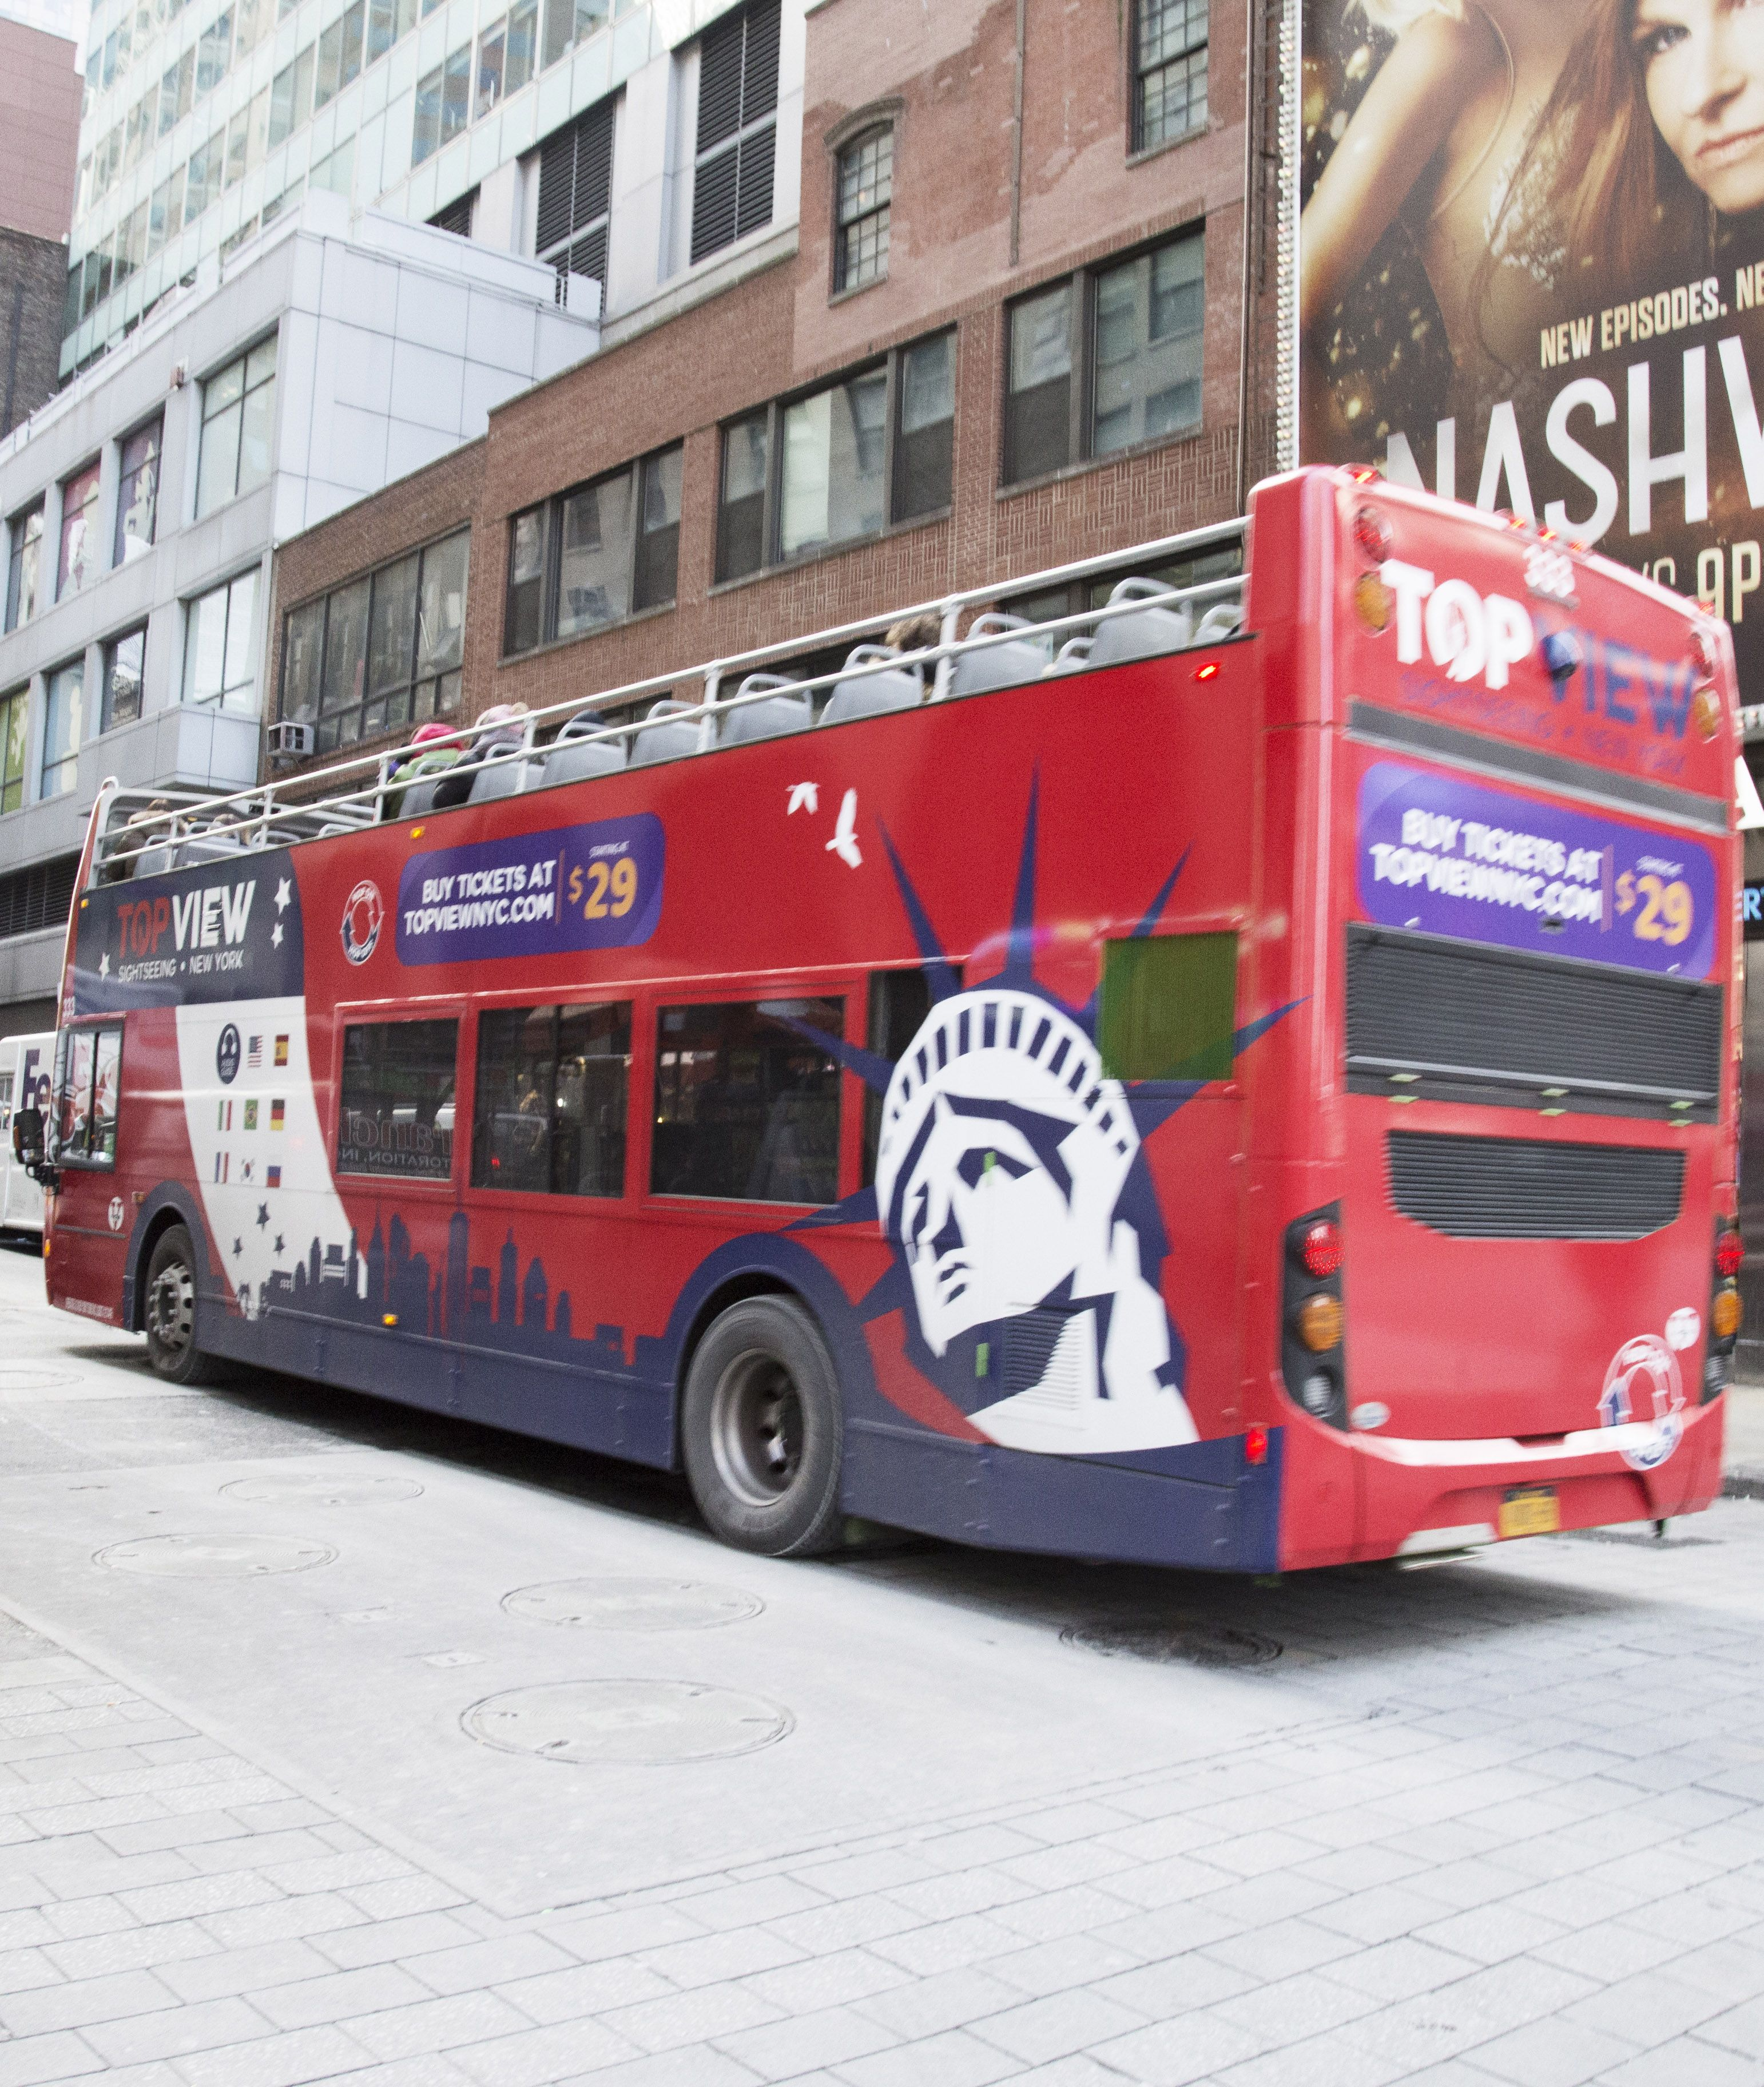 Bus Sightseeing Tours In New York City Beautiful Sight From Our Modern Double Decker Buses New York Tours Nyc Sightseeing New York City Tours